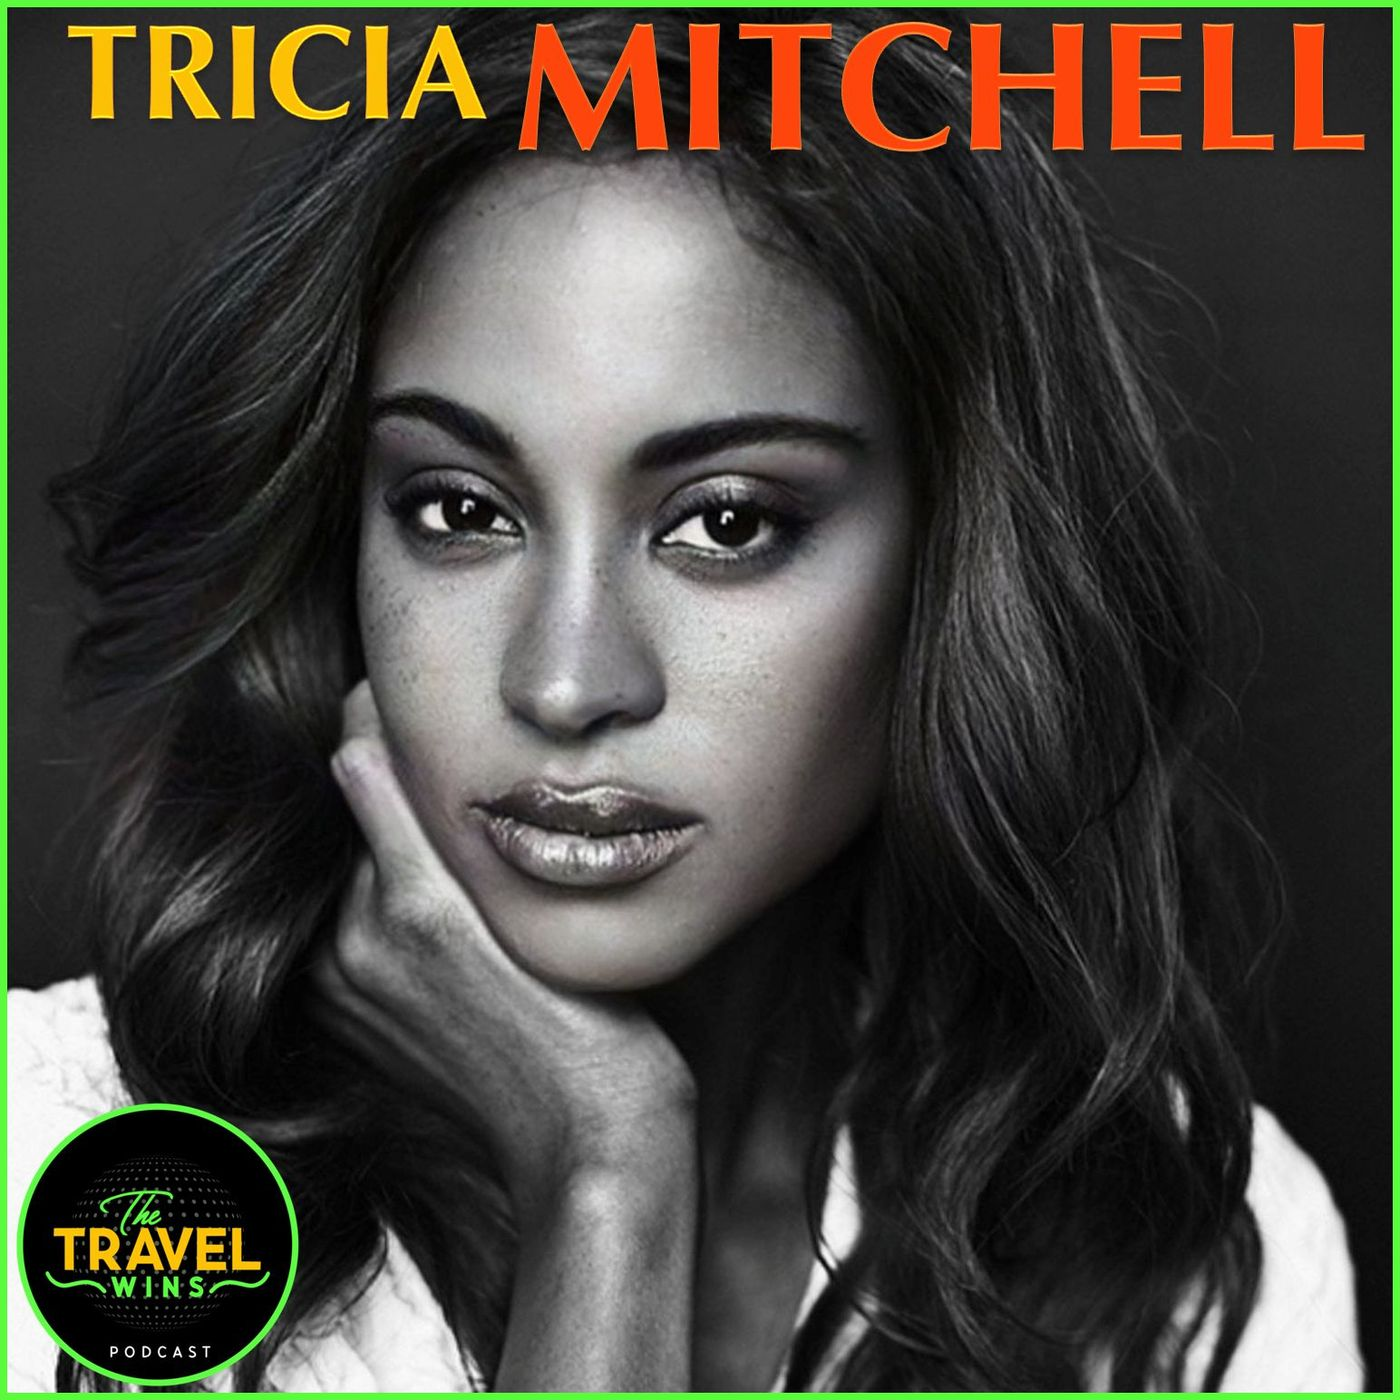 Tricia Mitchell | island girl, model and chef